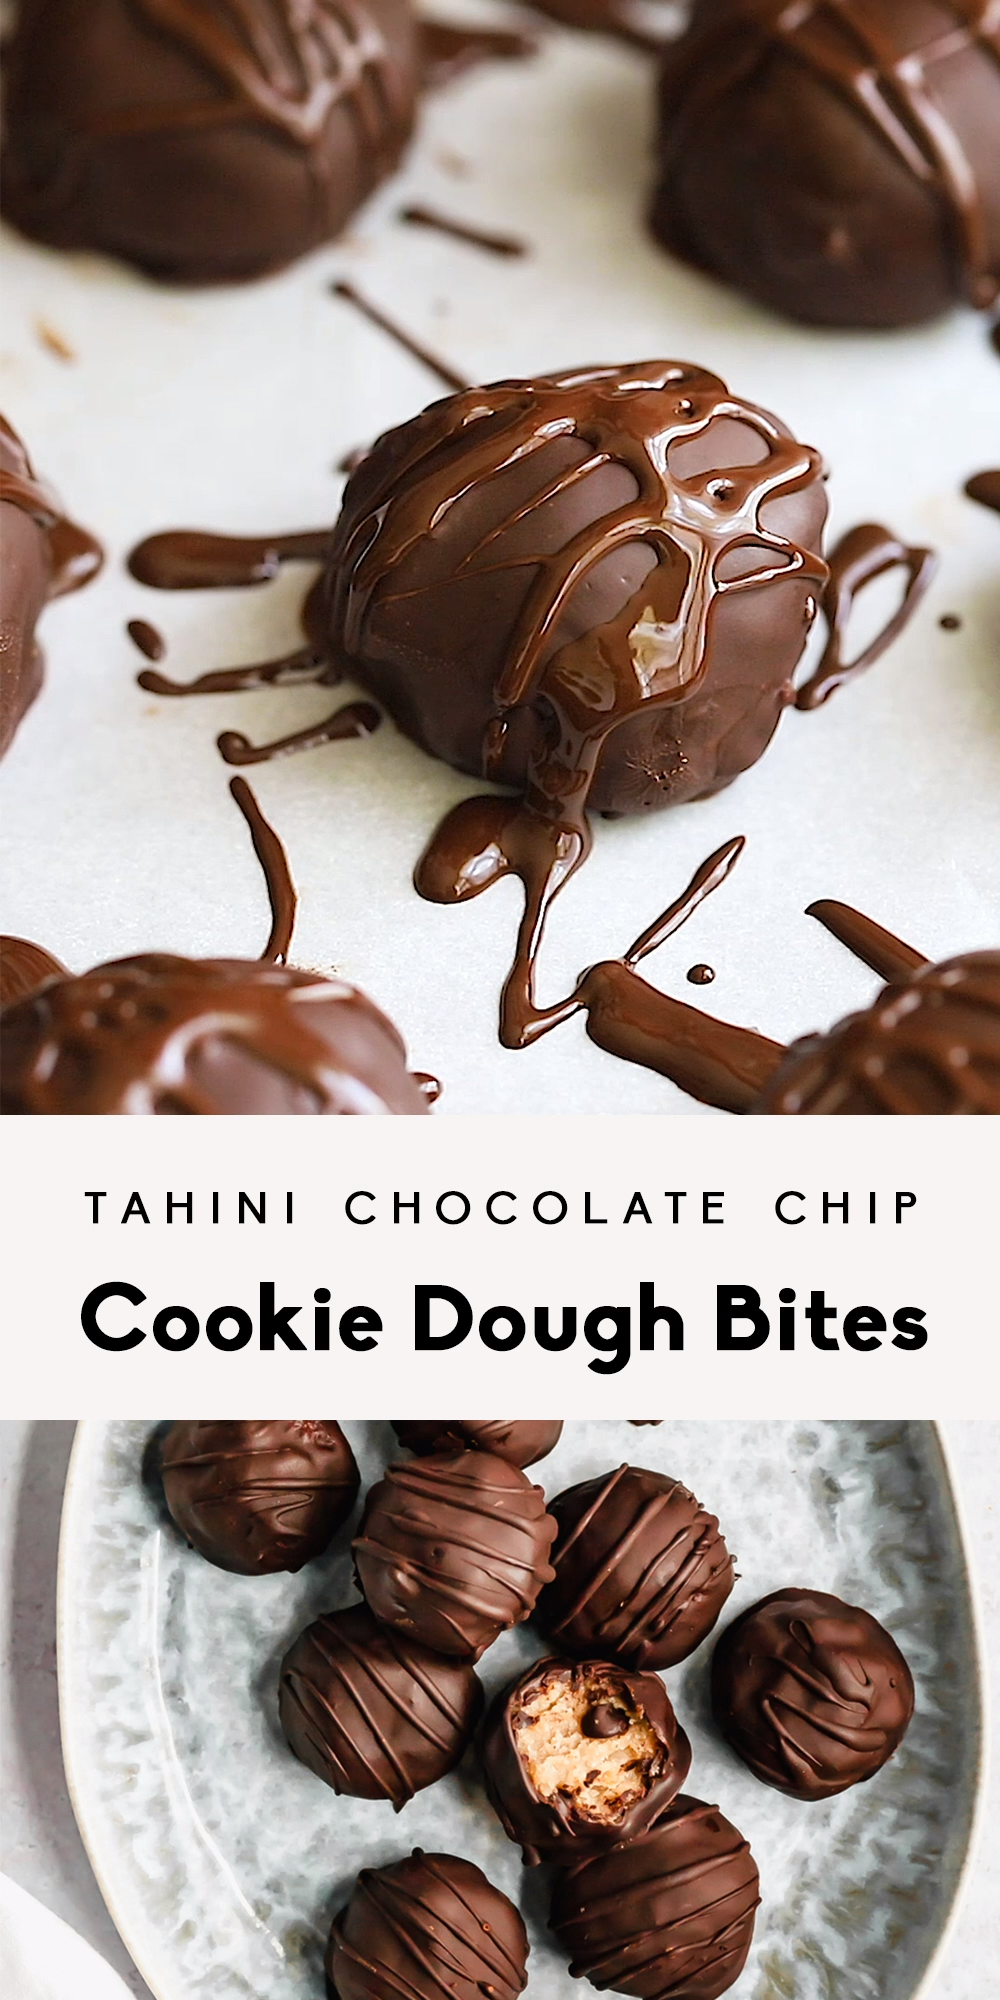 Tahini Chocolate Chip Cookie Dough Bites